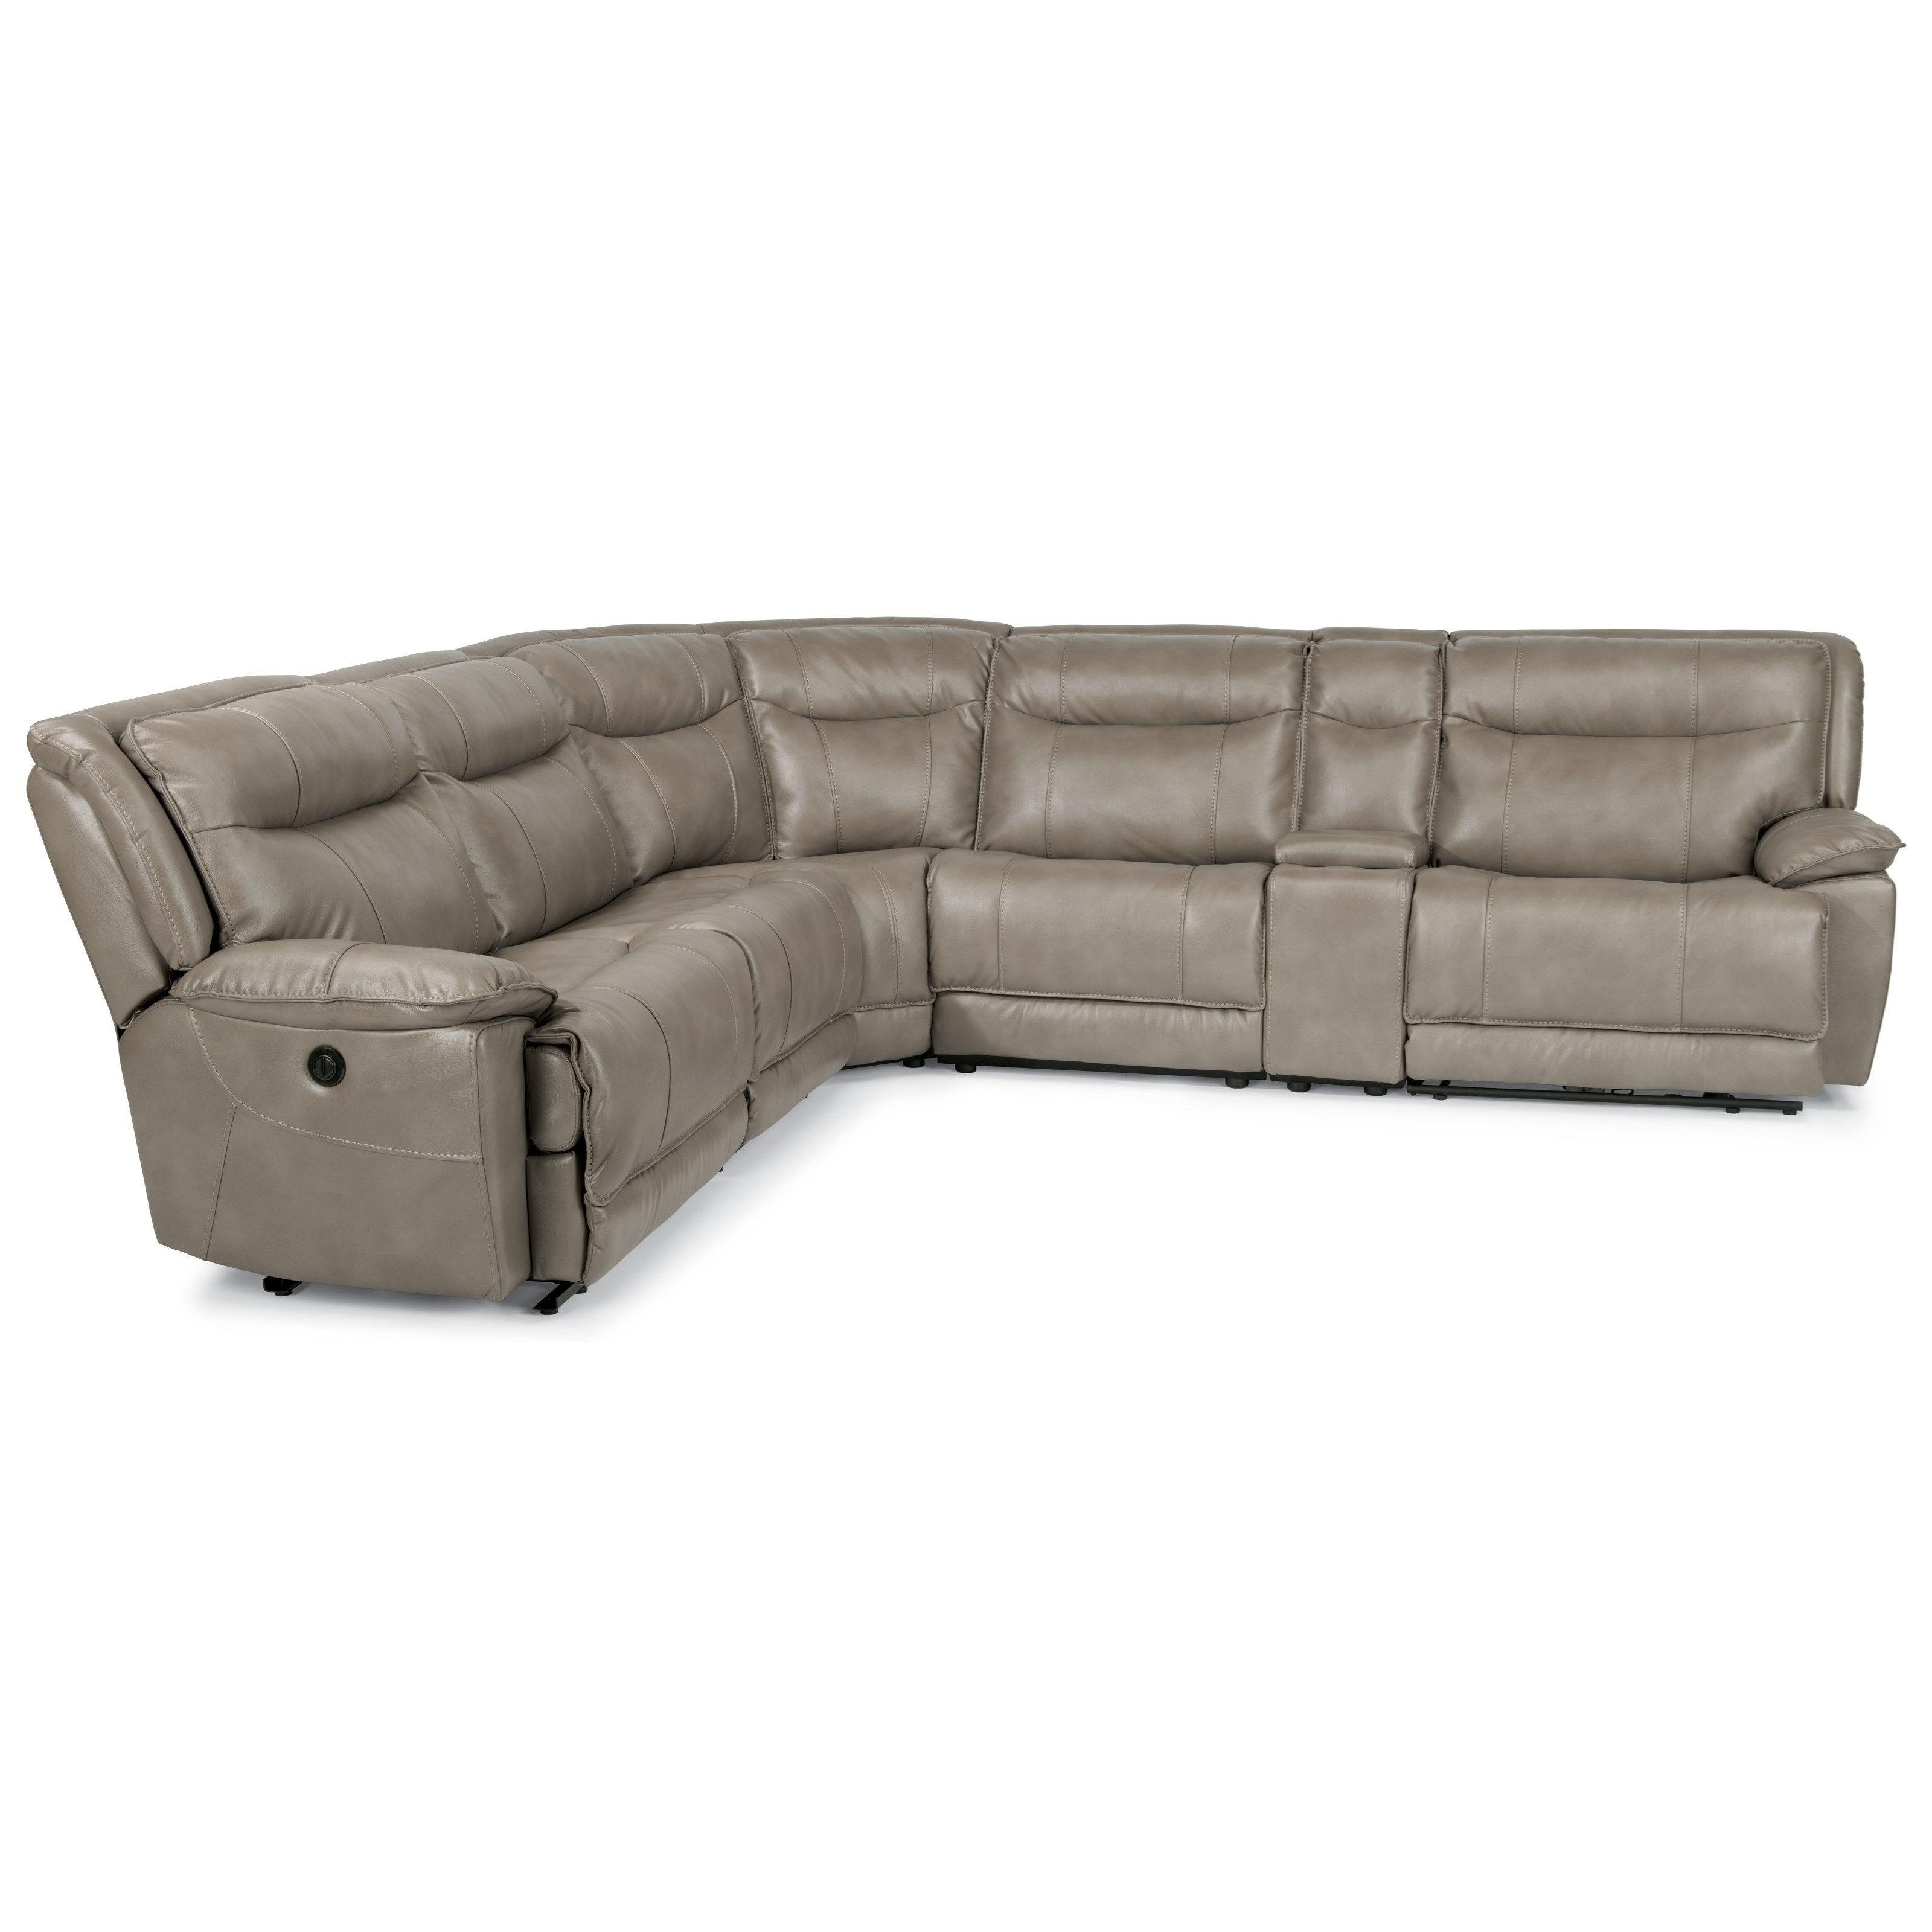 Flexsteel Latitudes-Bliss Six Piece Reclining Sectional Sofa with Cupholders and USB Charging Ports  sc 1 st  Wayside Furniture : reclining sectional with cup holders - Sectionals, Sofas & Couches